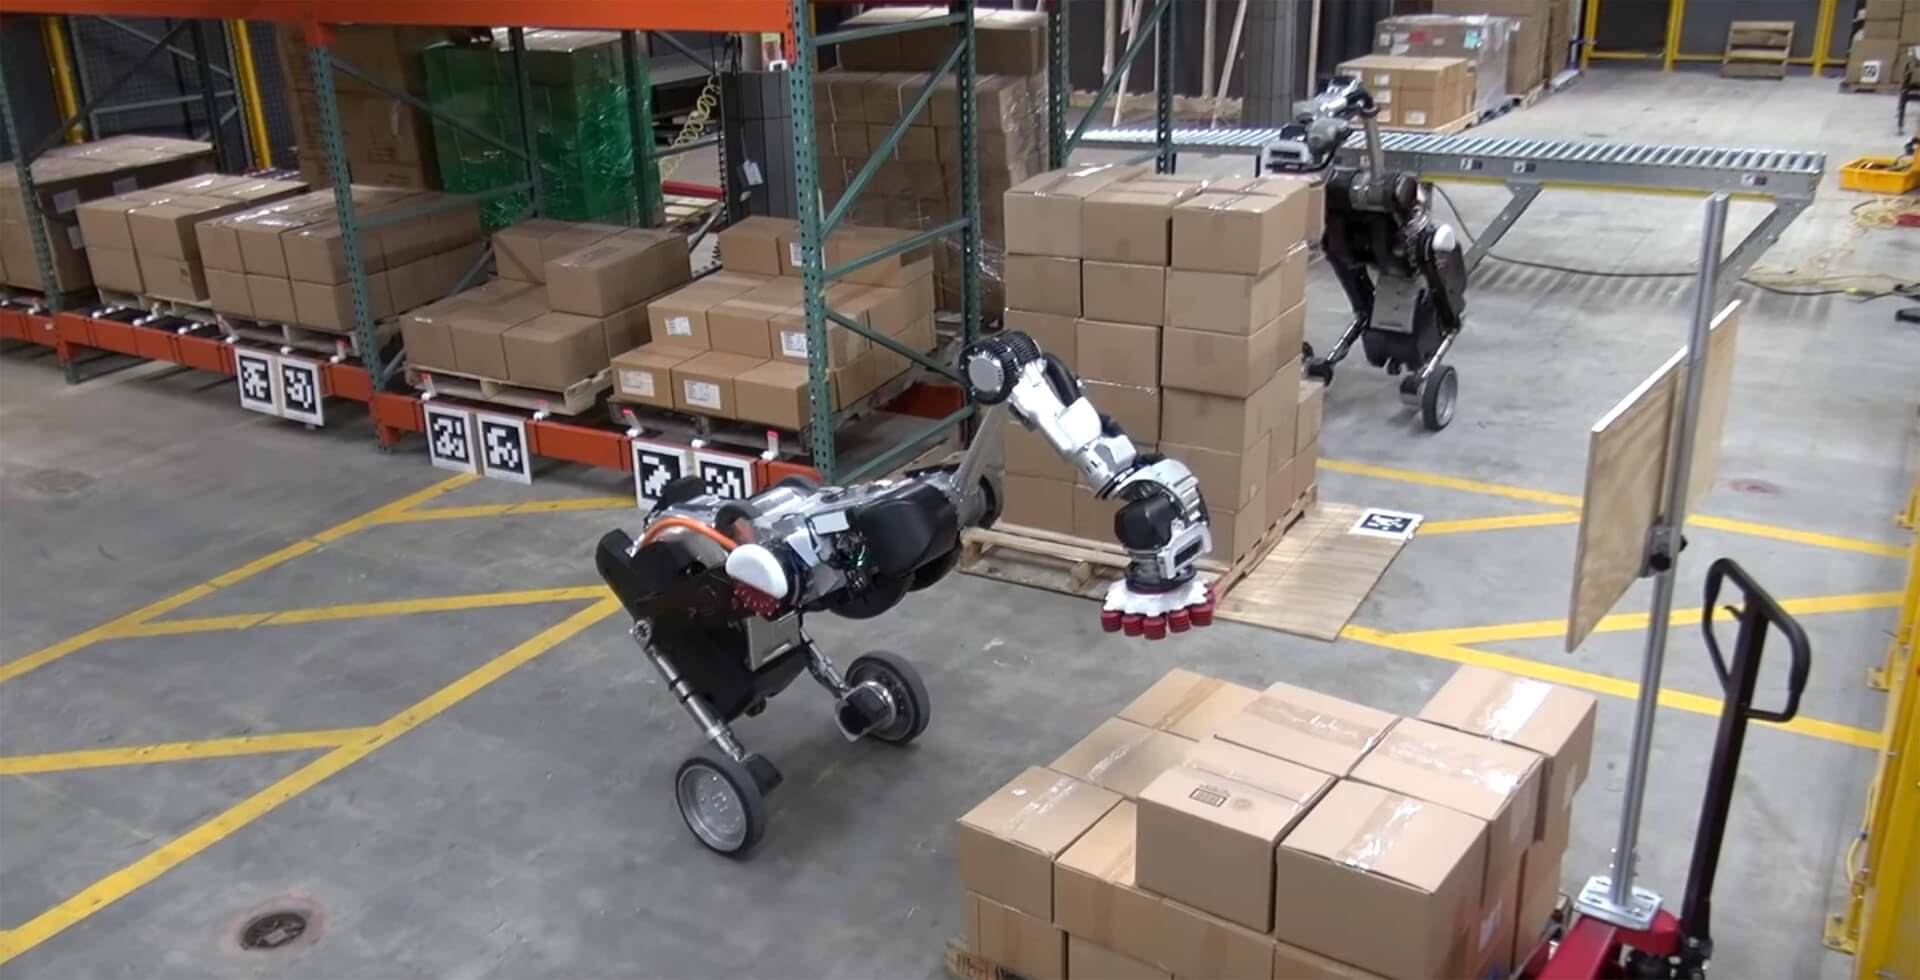 Boston Dynamics' robots — impressive, but far from the Terminator